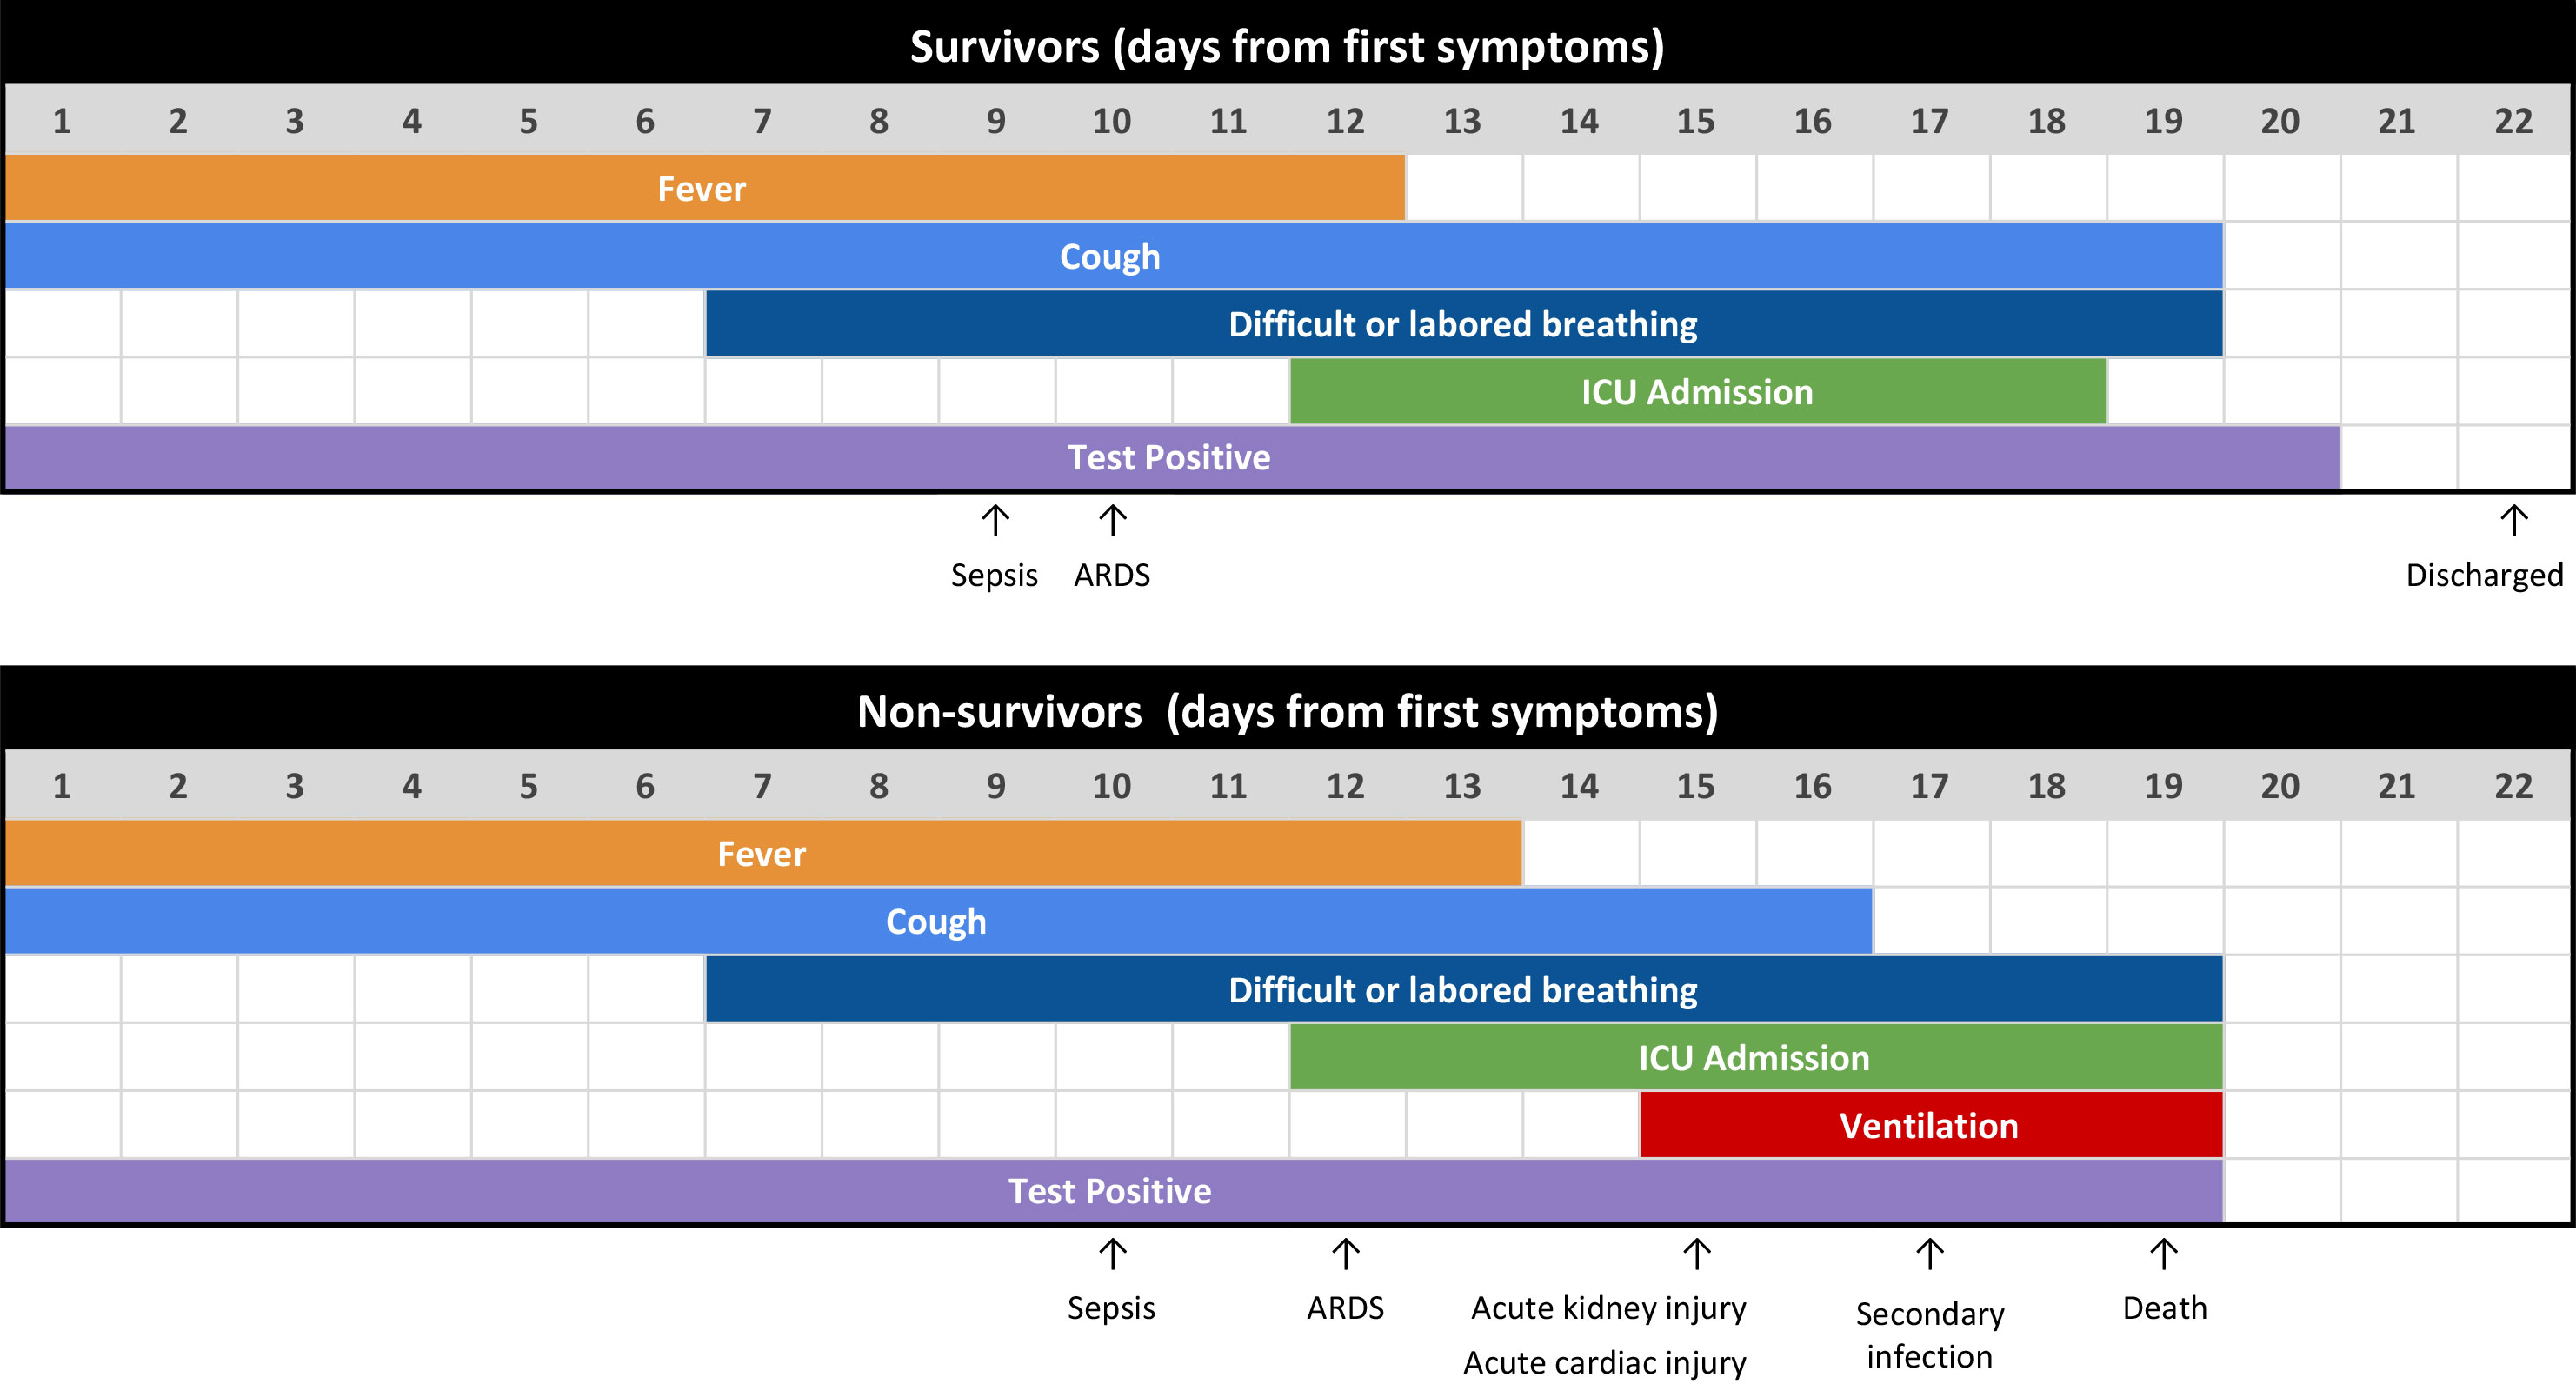 progression and duration of the major symptoms of COVID-19